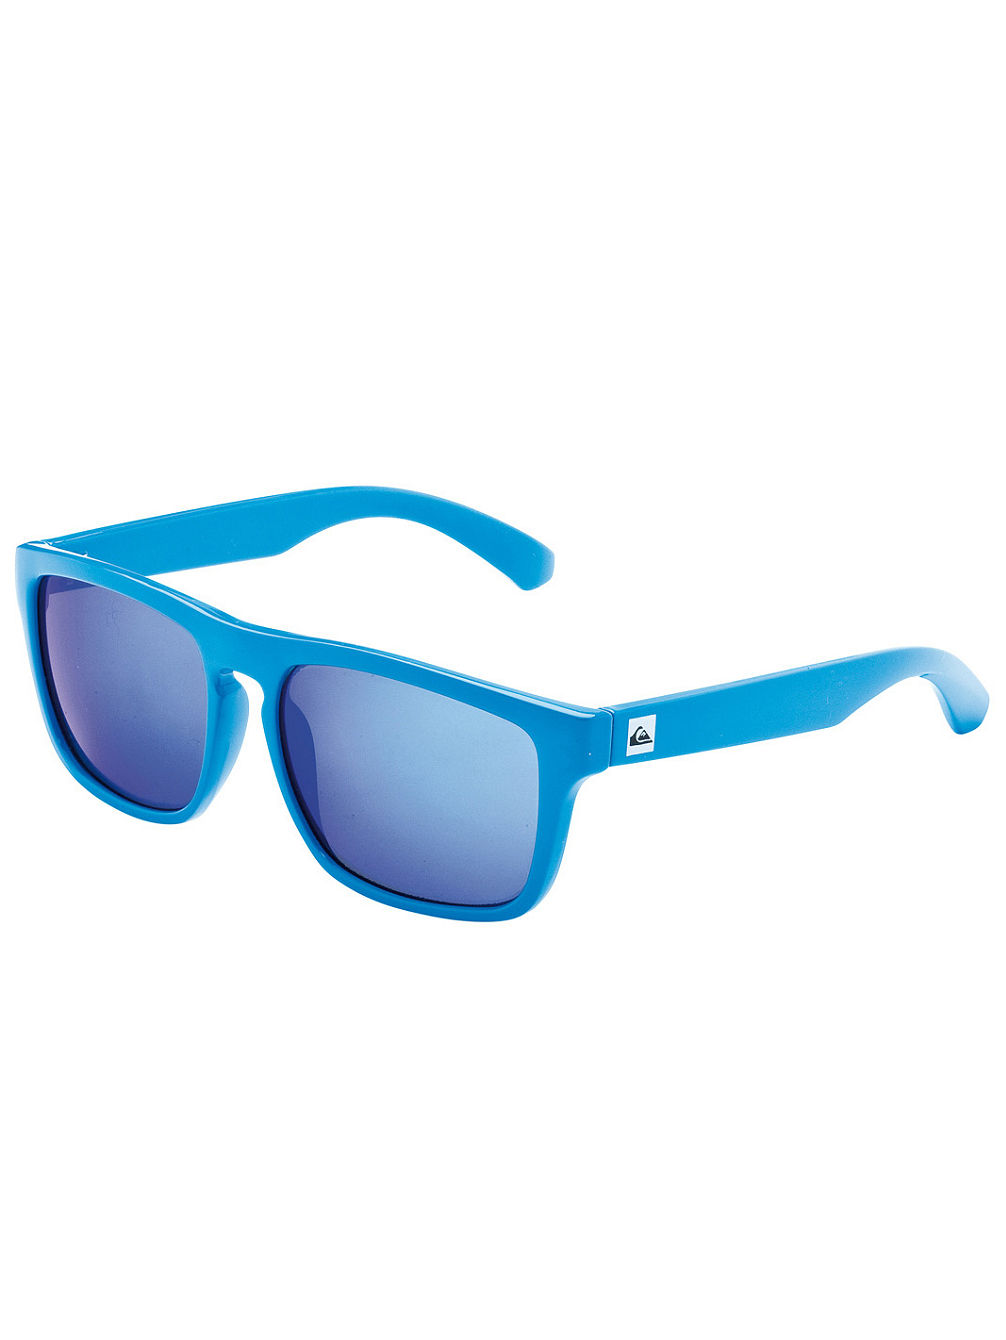 quiksilver-small-fry-blue-youth